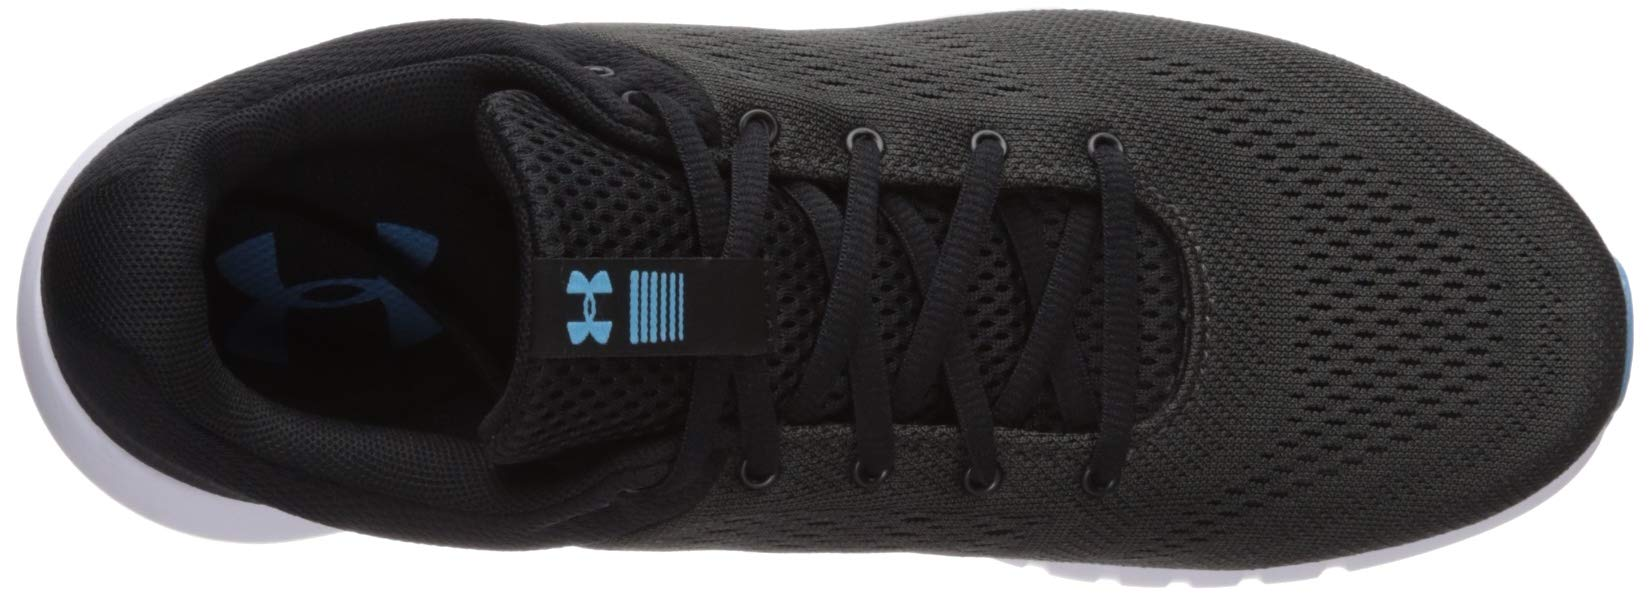 Under Armour Men's Micro G Pursuit Running Shoe, Academy Blue (402)/Black, 9.5 by Under Armour (Image #7)